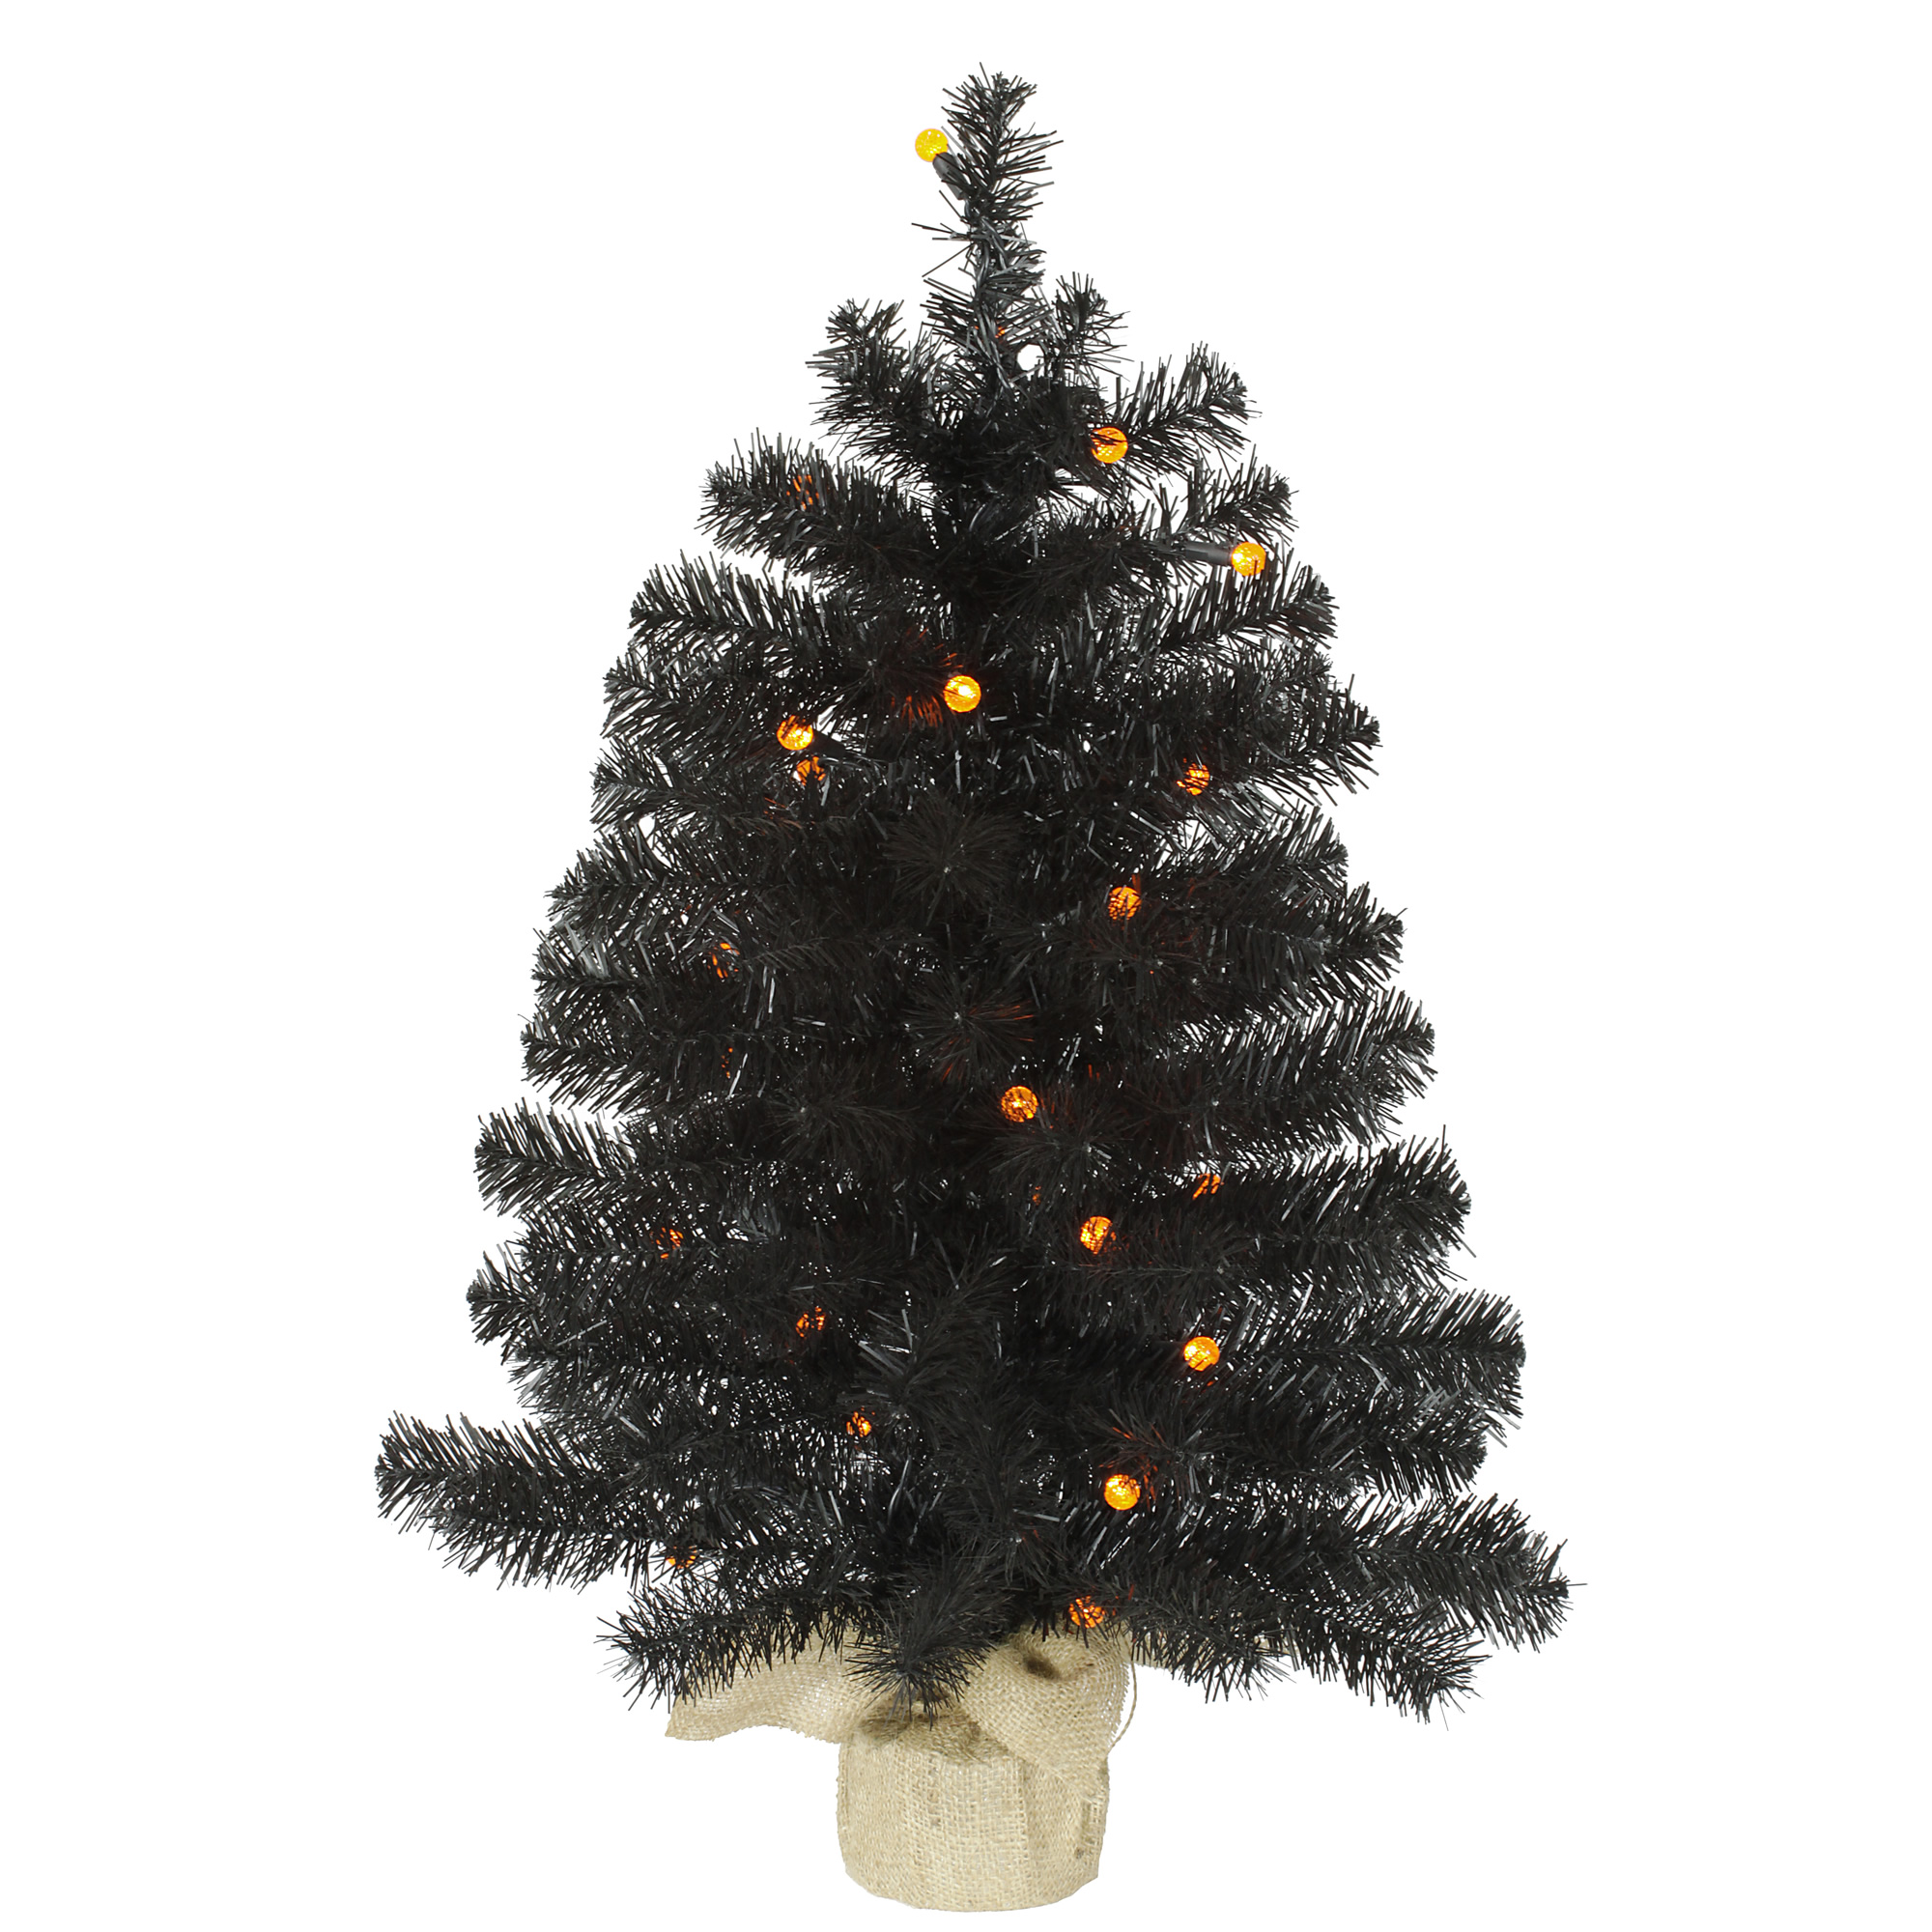 "Vickerman Artificial Christmas Tree 30"" Black Pine Tree G12 30 LED Orange Lights"